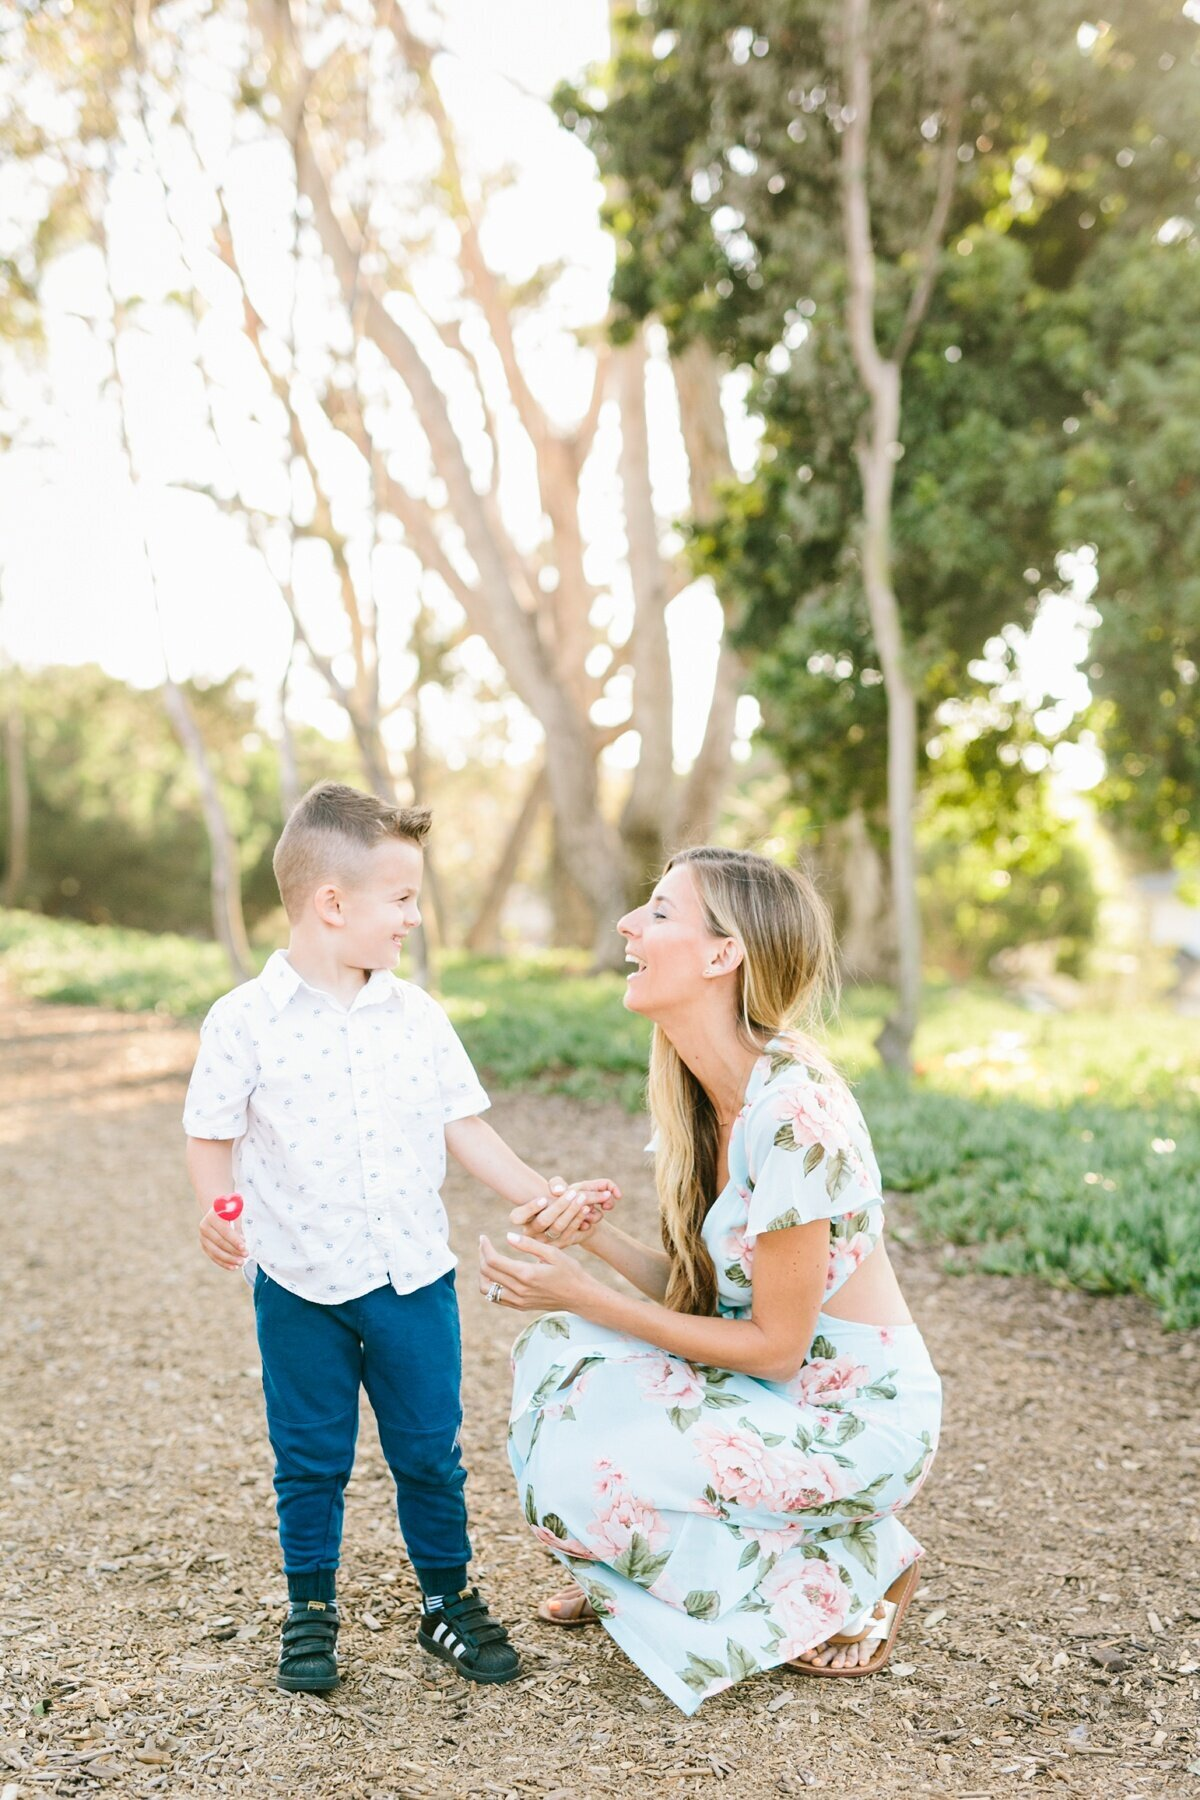 California Family Photography-Texas Family Photographer-Family Photos-Jodee Debes Photography-219